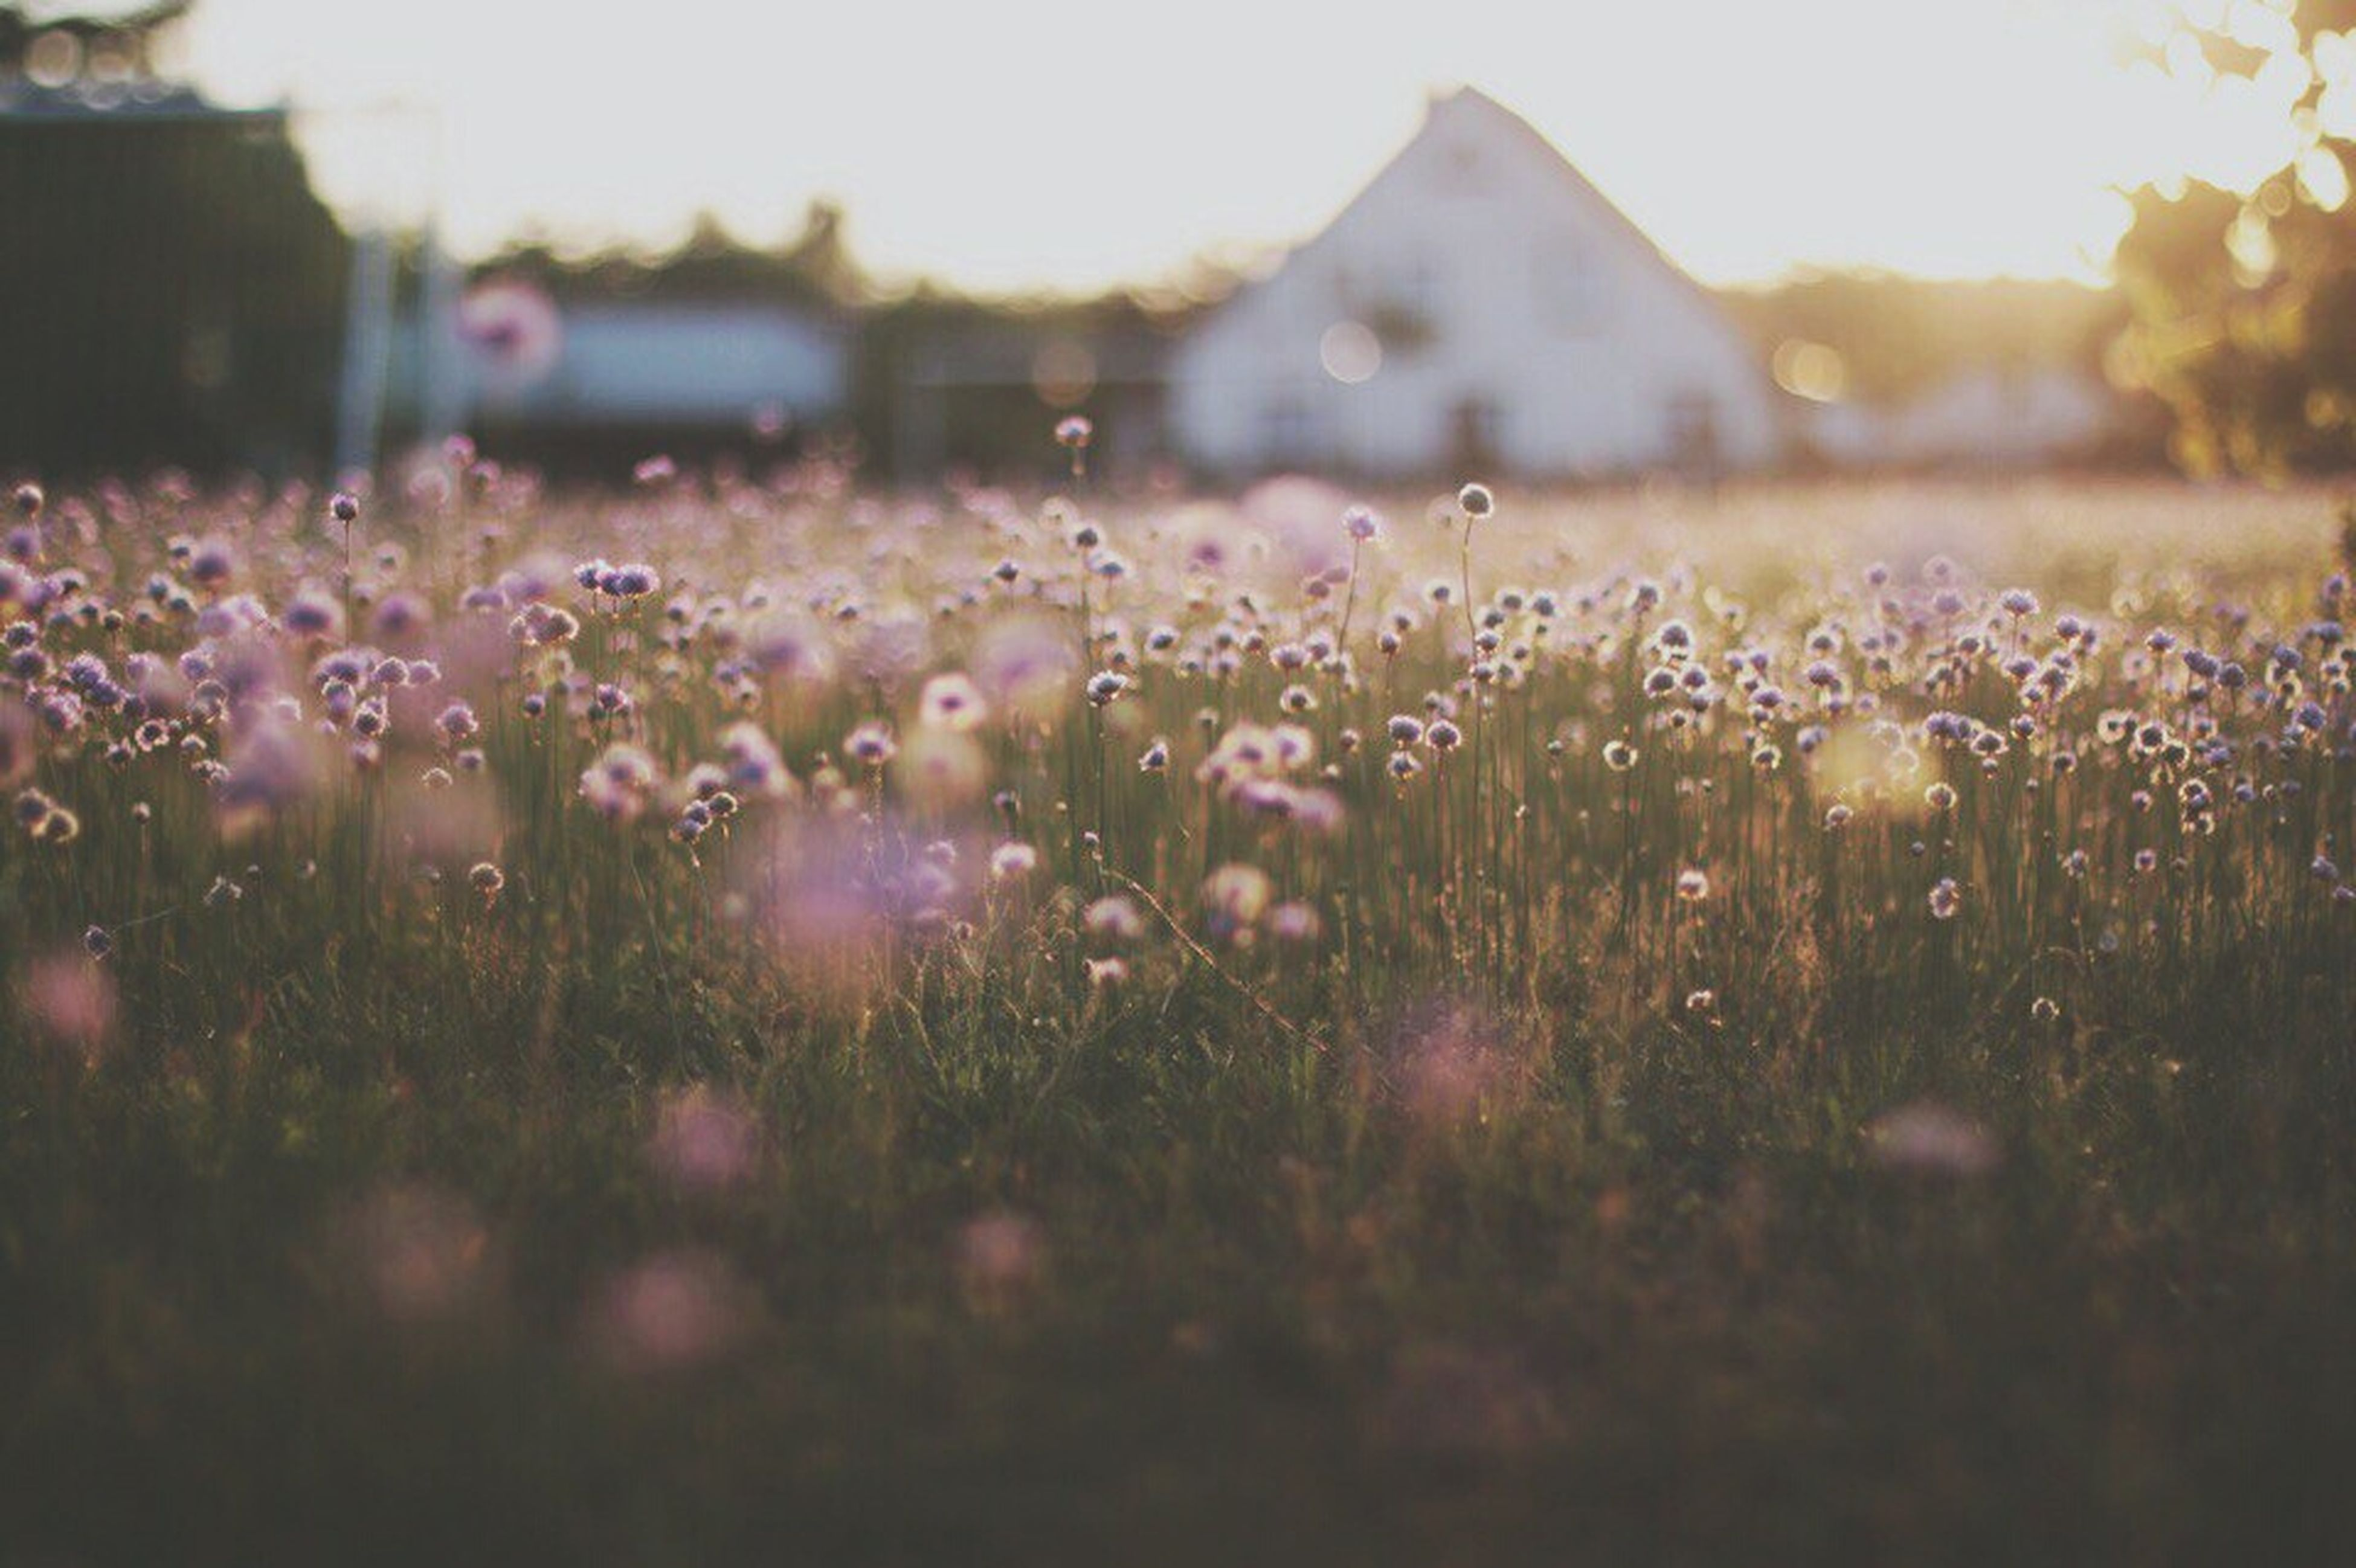 flower, grass, field, selective focus, meadow, outdoors, nature, growth, no people, sunset, summer, day, rural scene, beauty in nature, freshness, close-up, flower head, sky